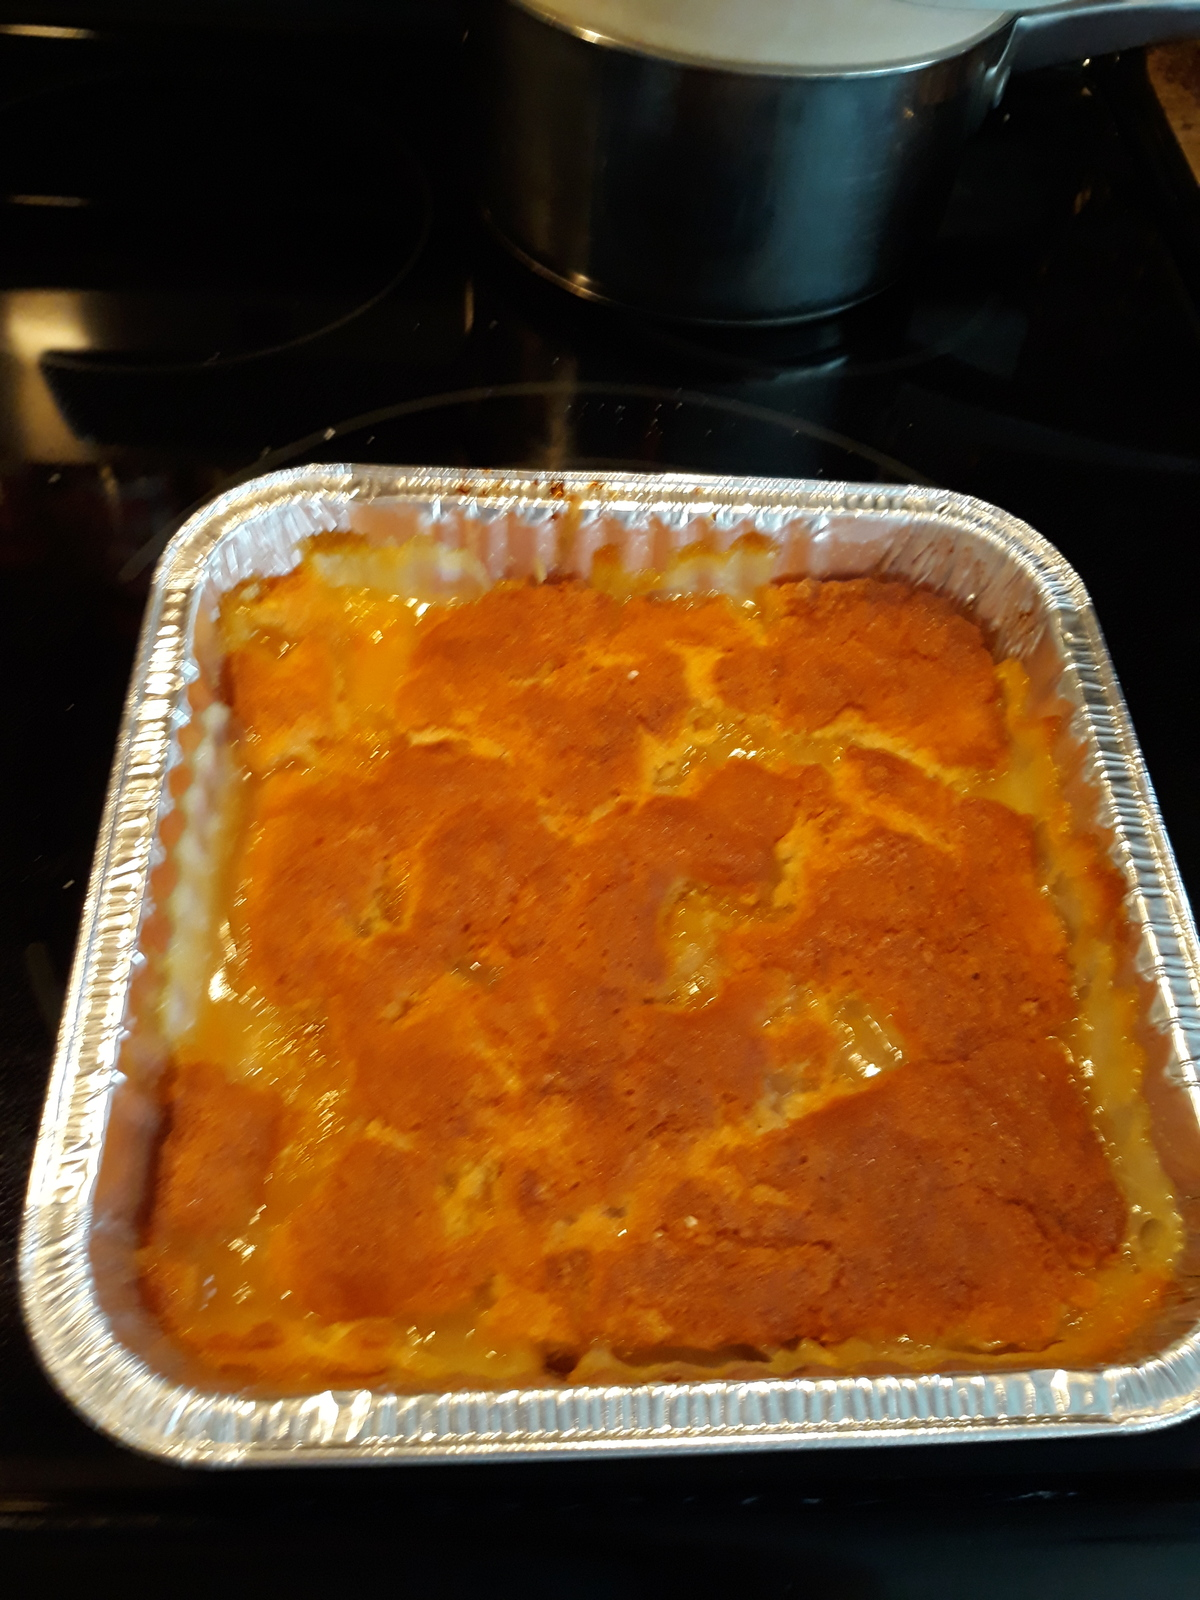 Primary image for Homemade peach cobbler